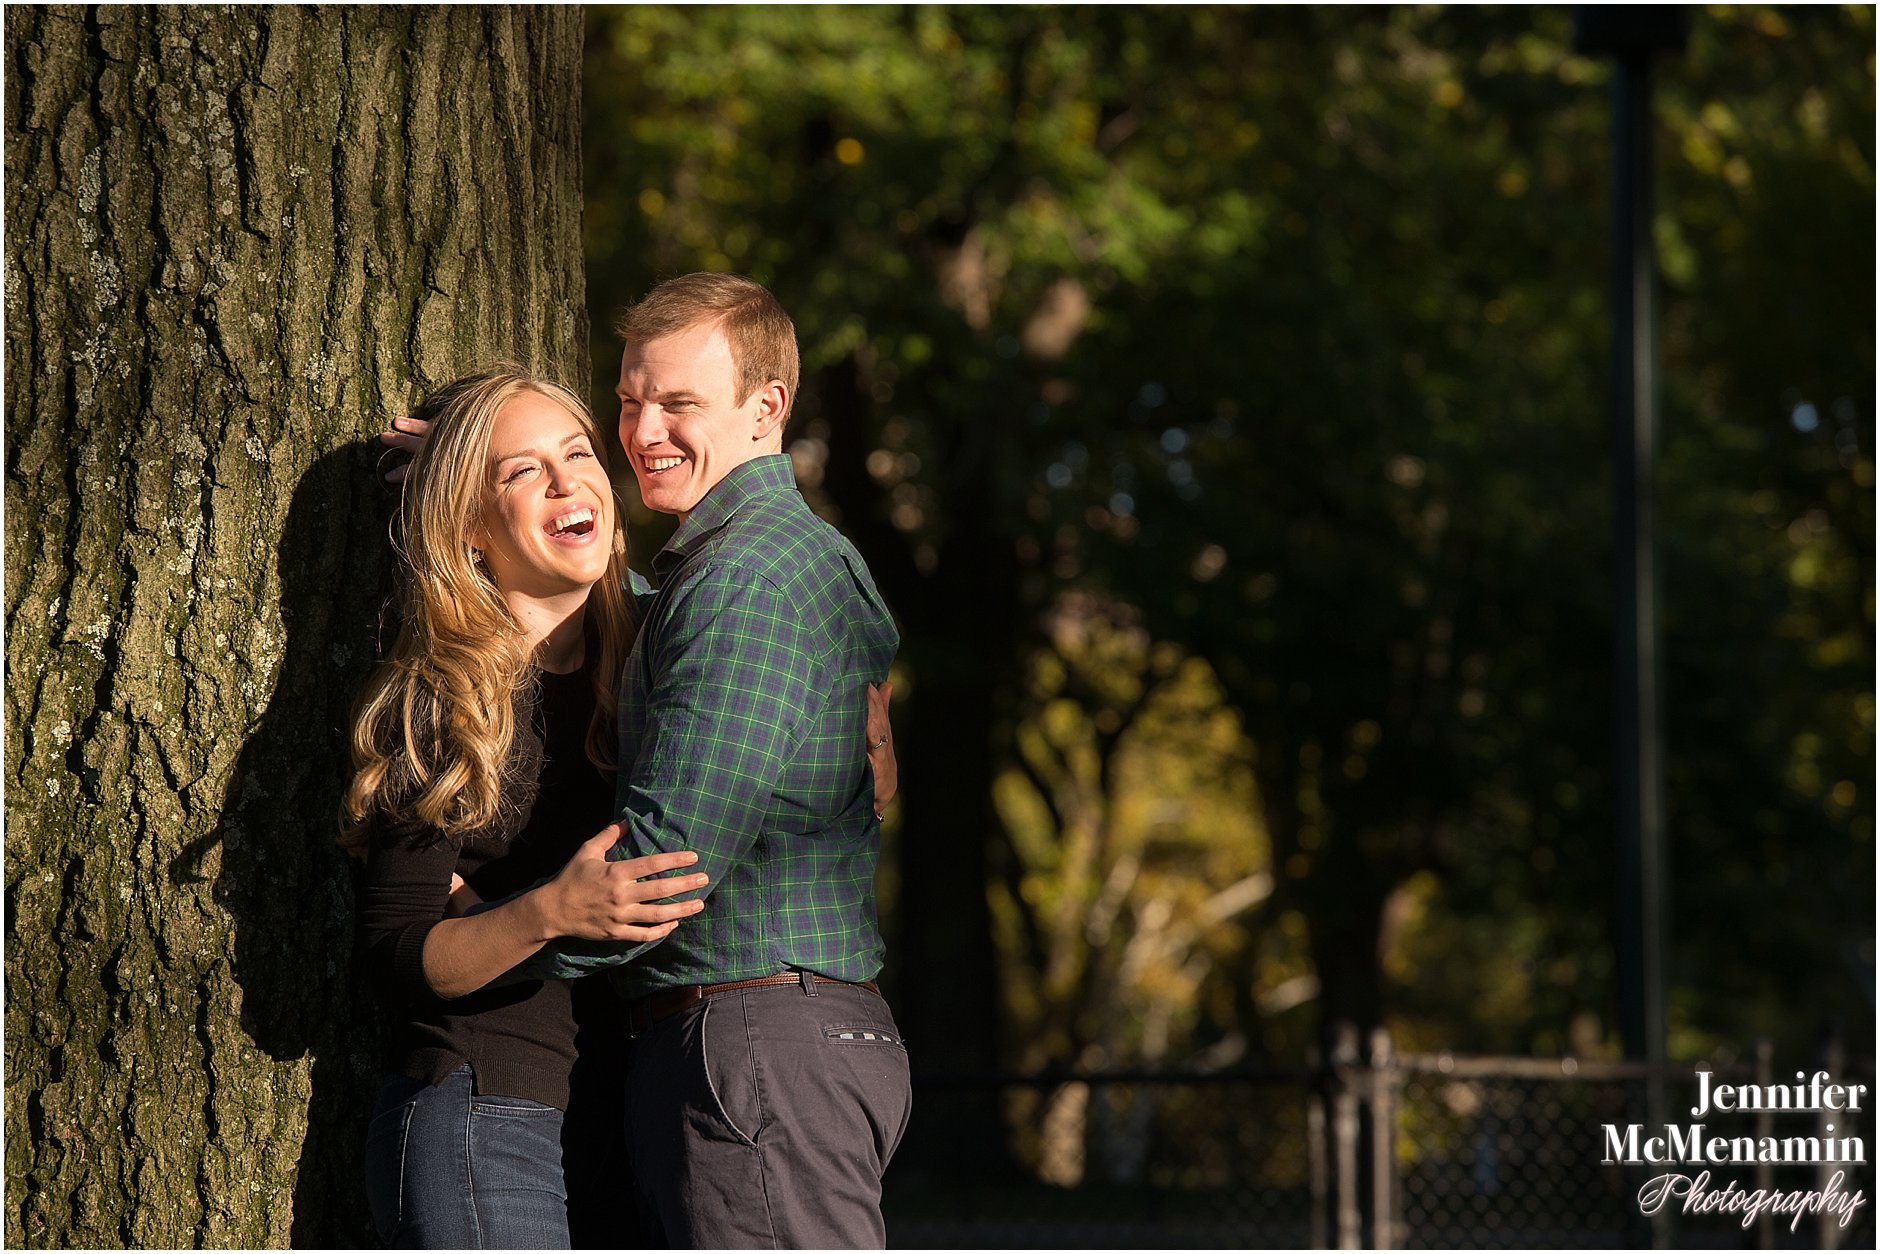 006-jennifer-mcmenamin-photography-nyc-engagement-photos_0004